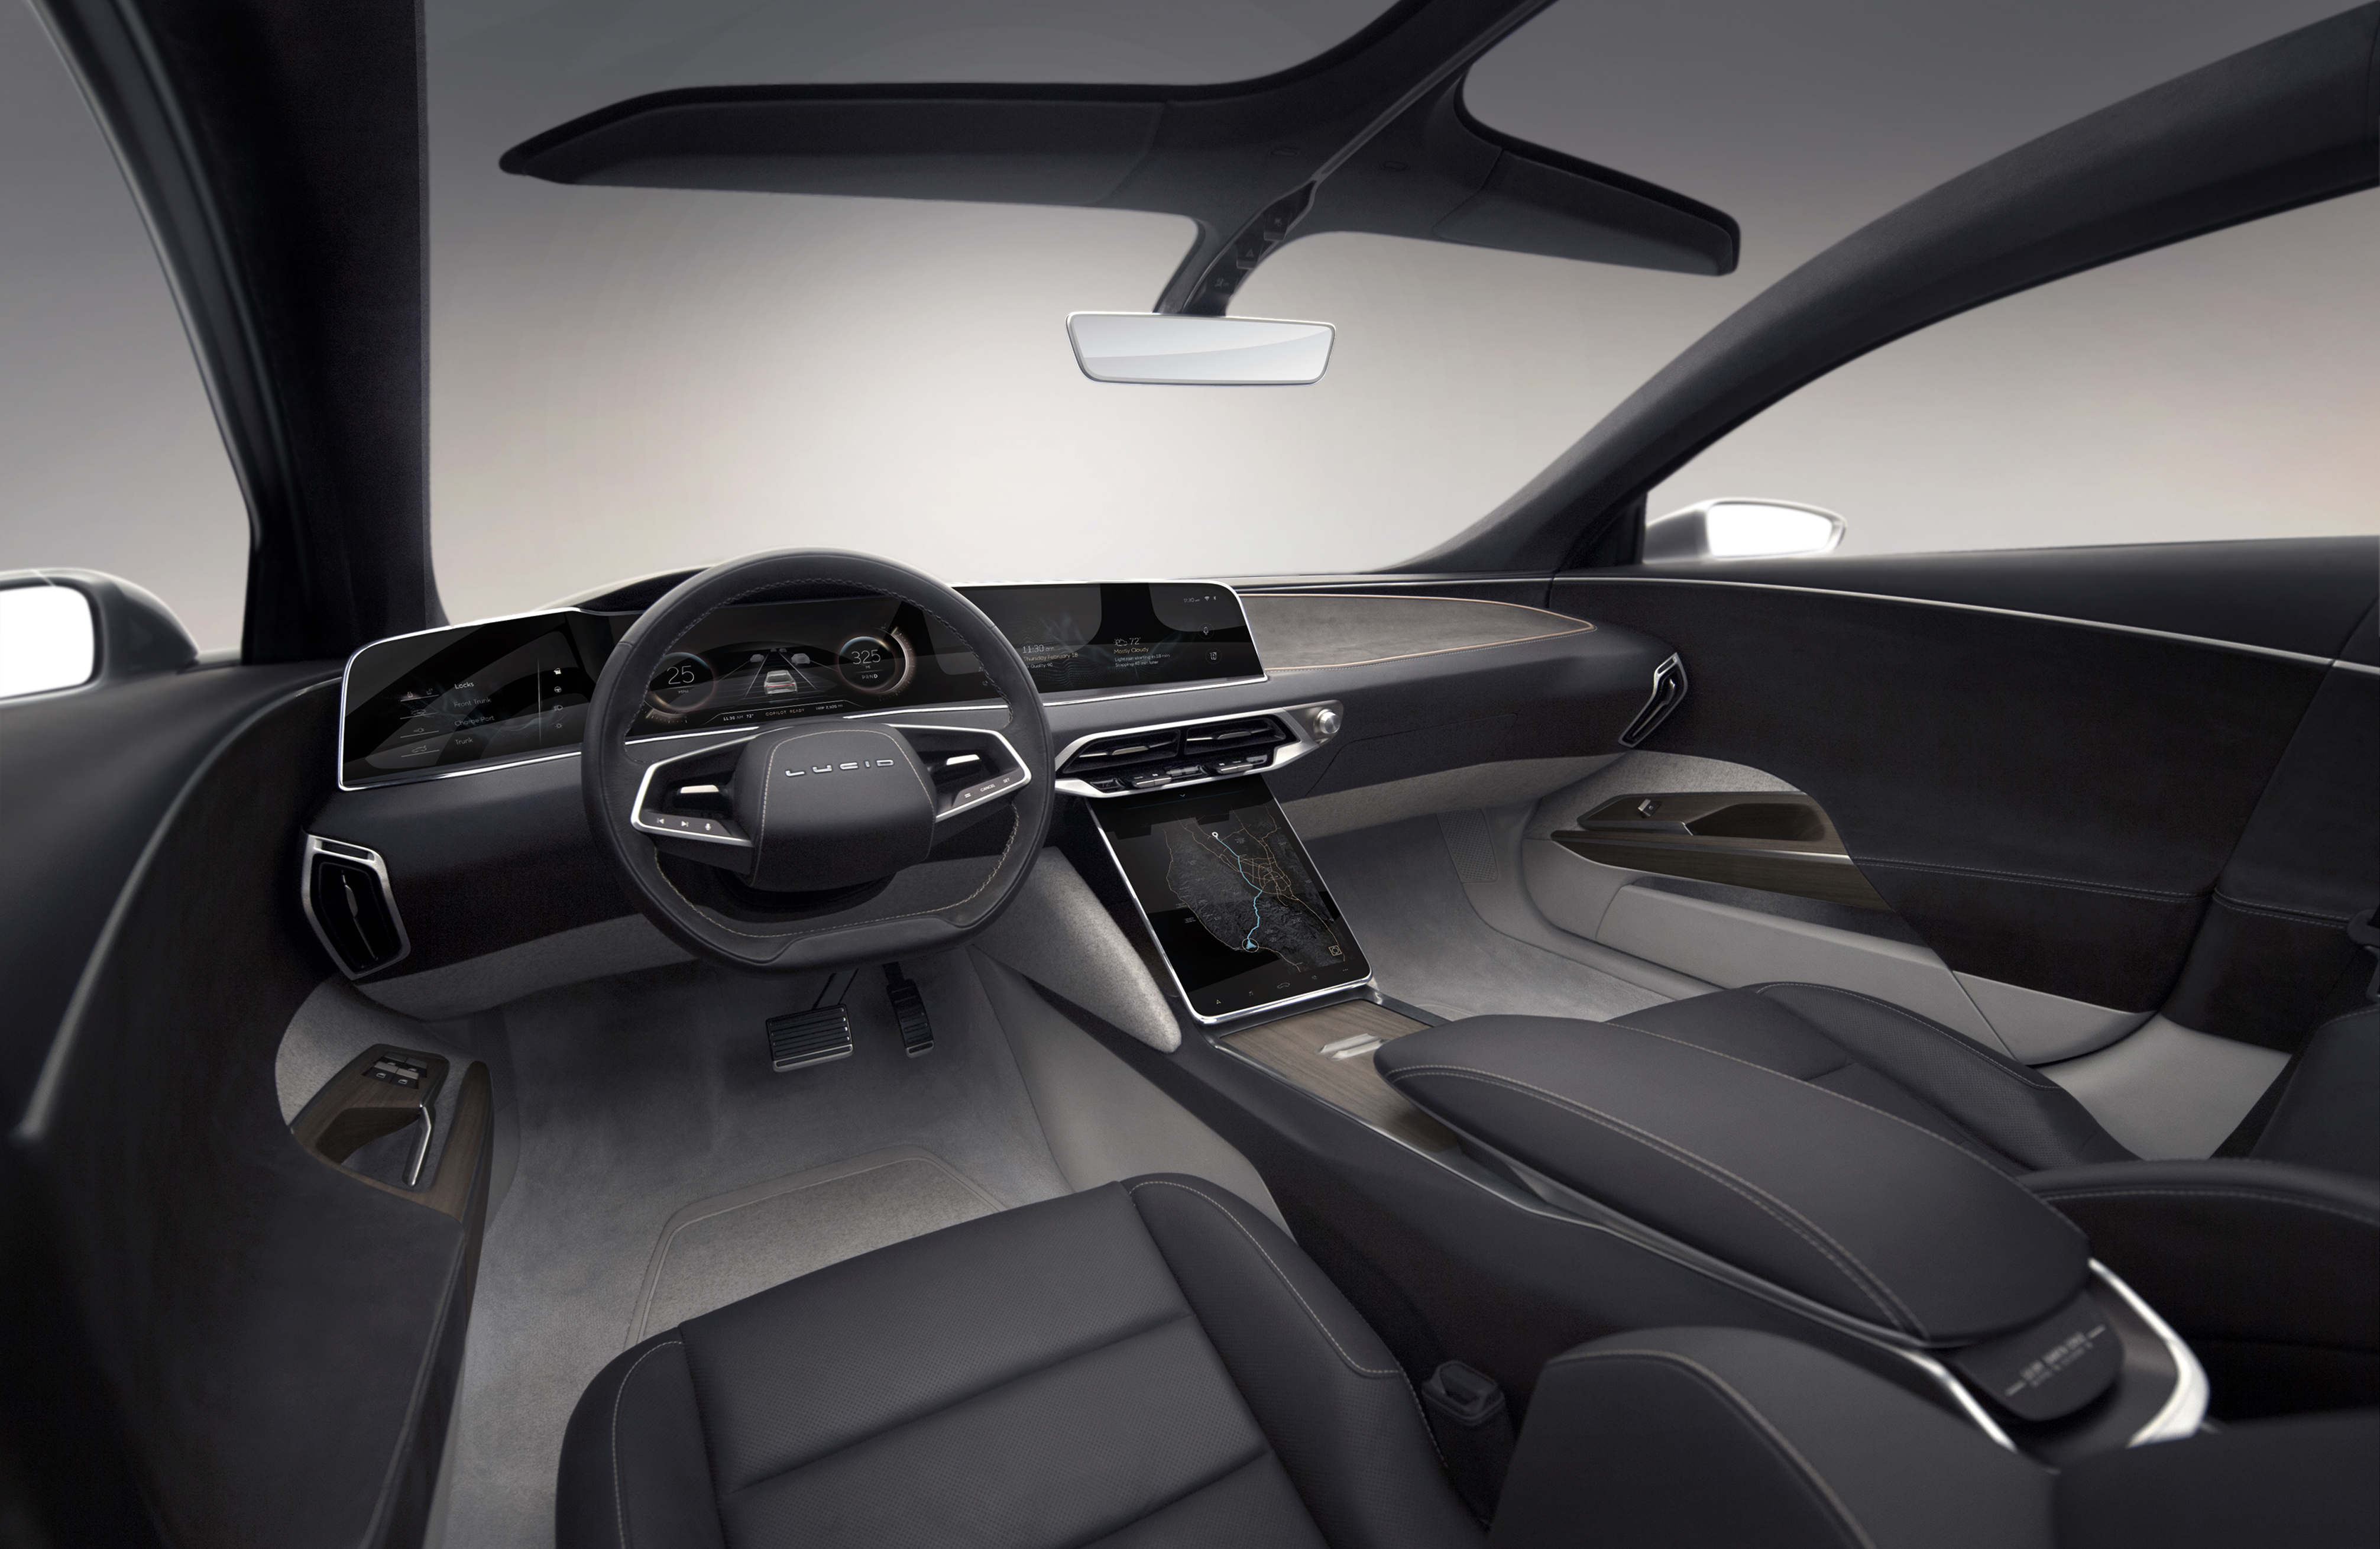 https://www.theextravagant.com/wp-content/uploads/2017/09/Lucid_Air_Interior_02.jpg